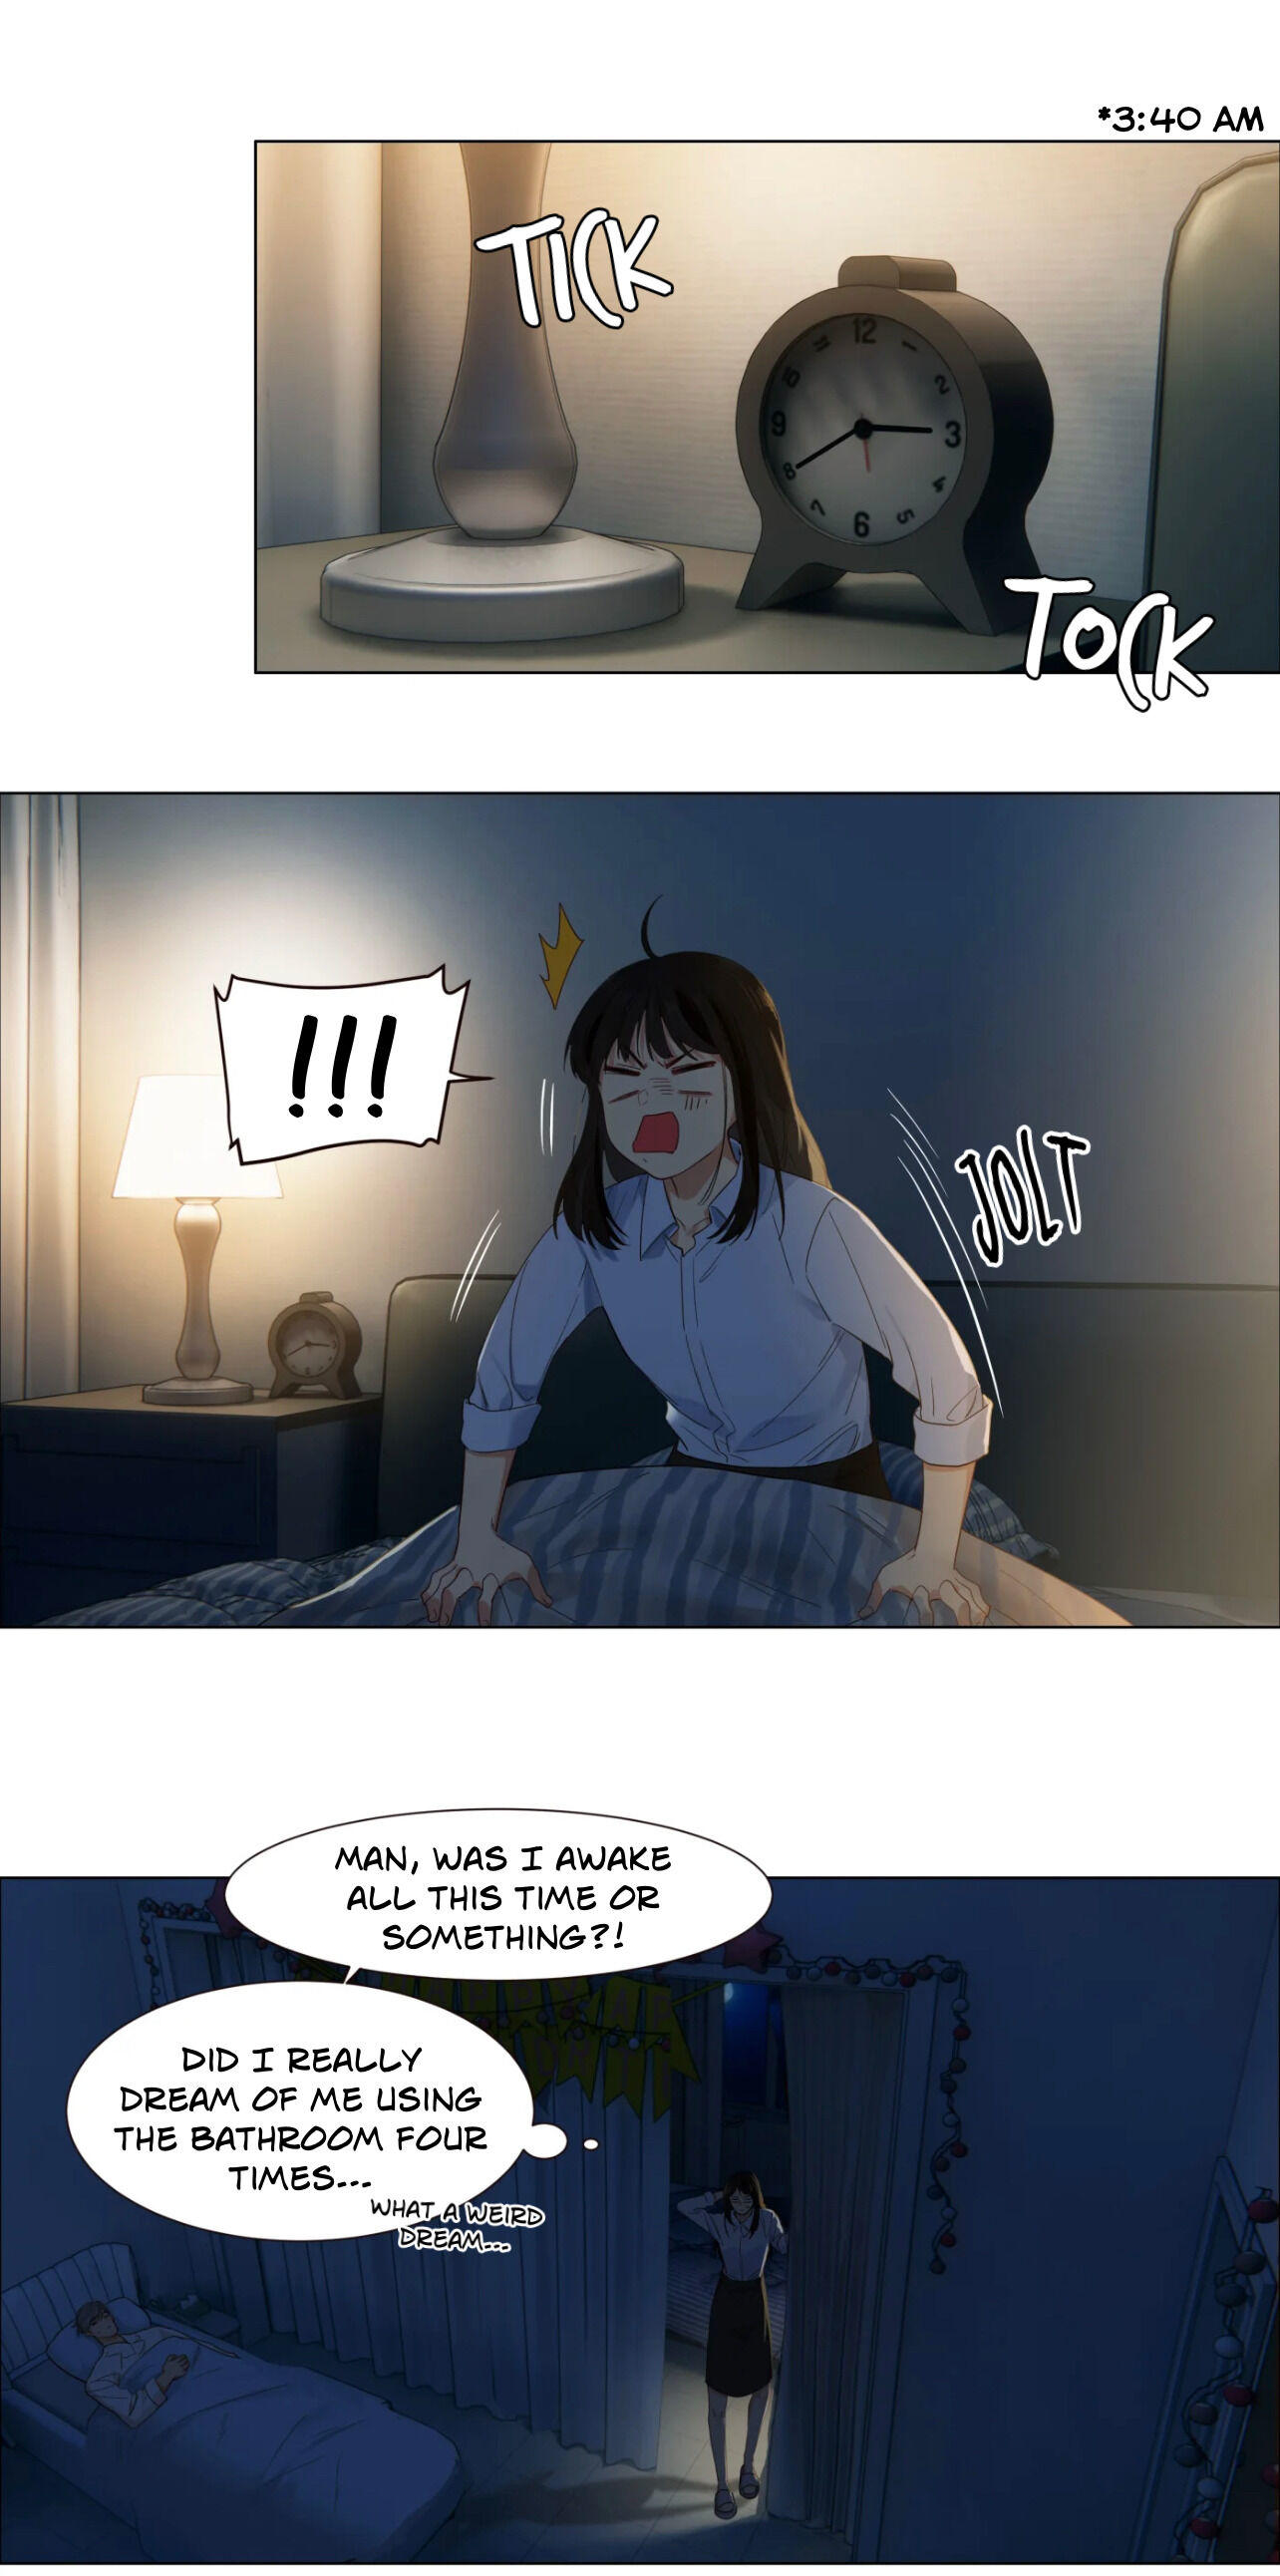 It'S Not That I Want To Wear Women'S Clothing Volume 4 Chapter 51 : Leave It To Him! page 4 - Mangakakalots.com